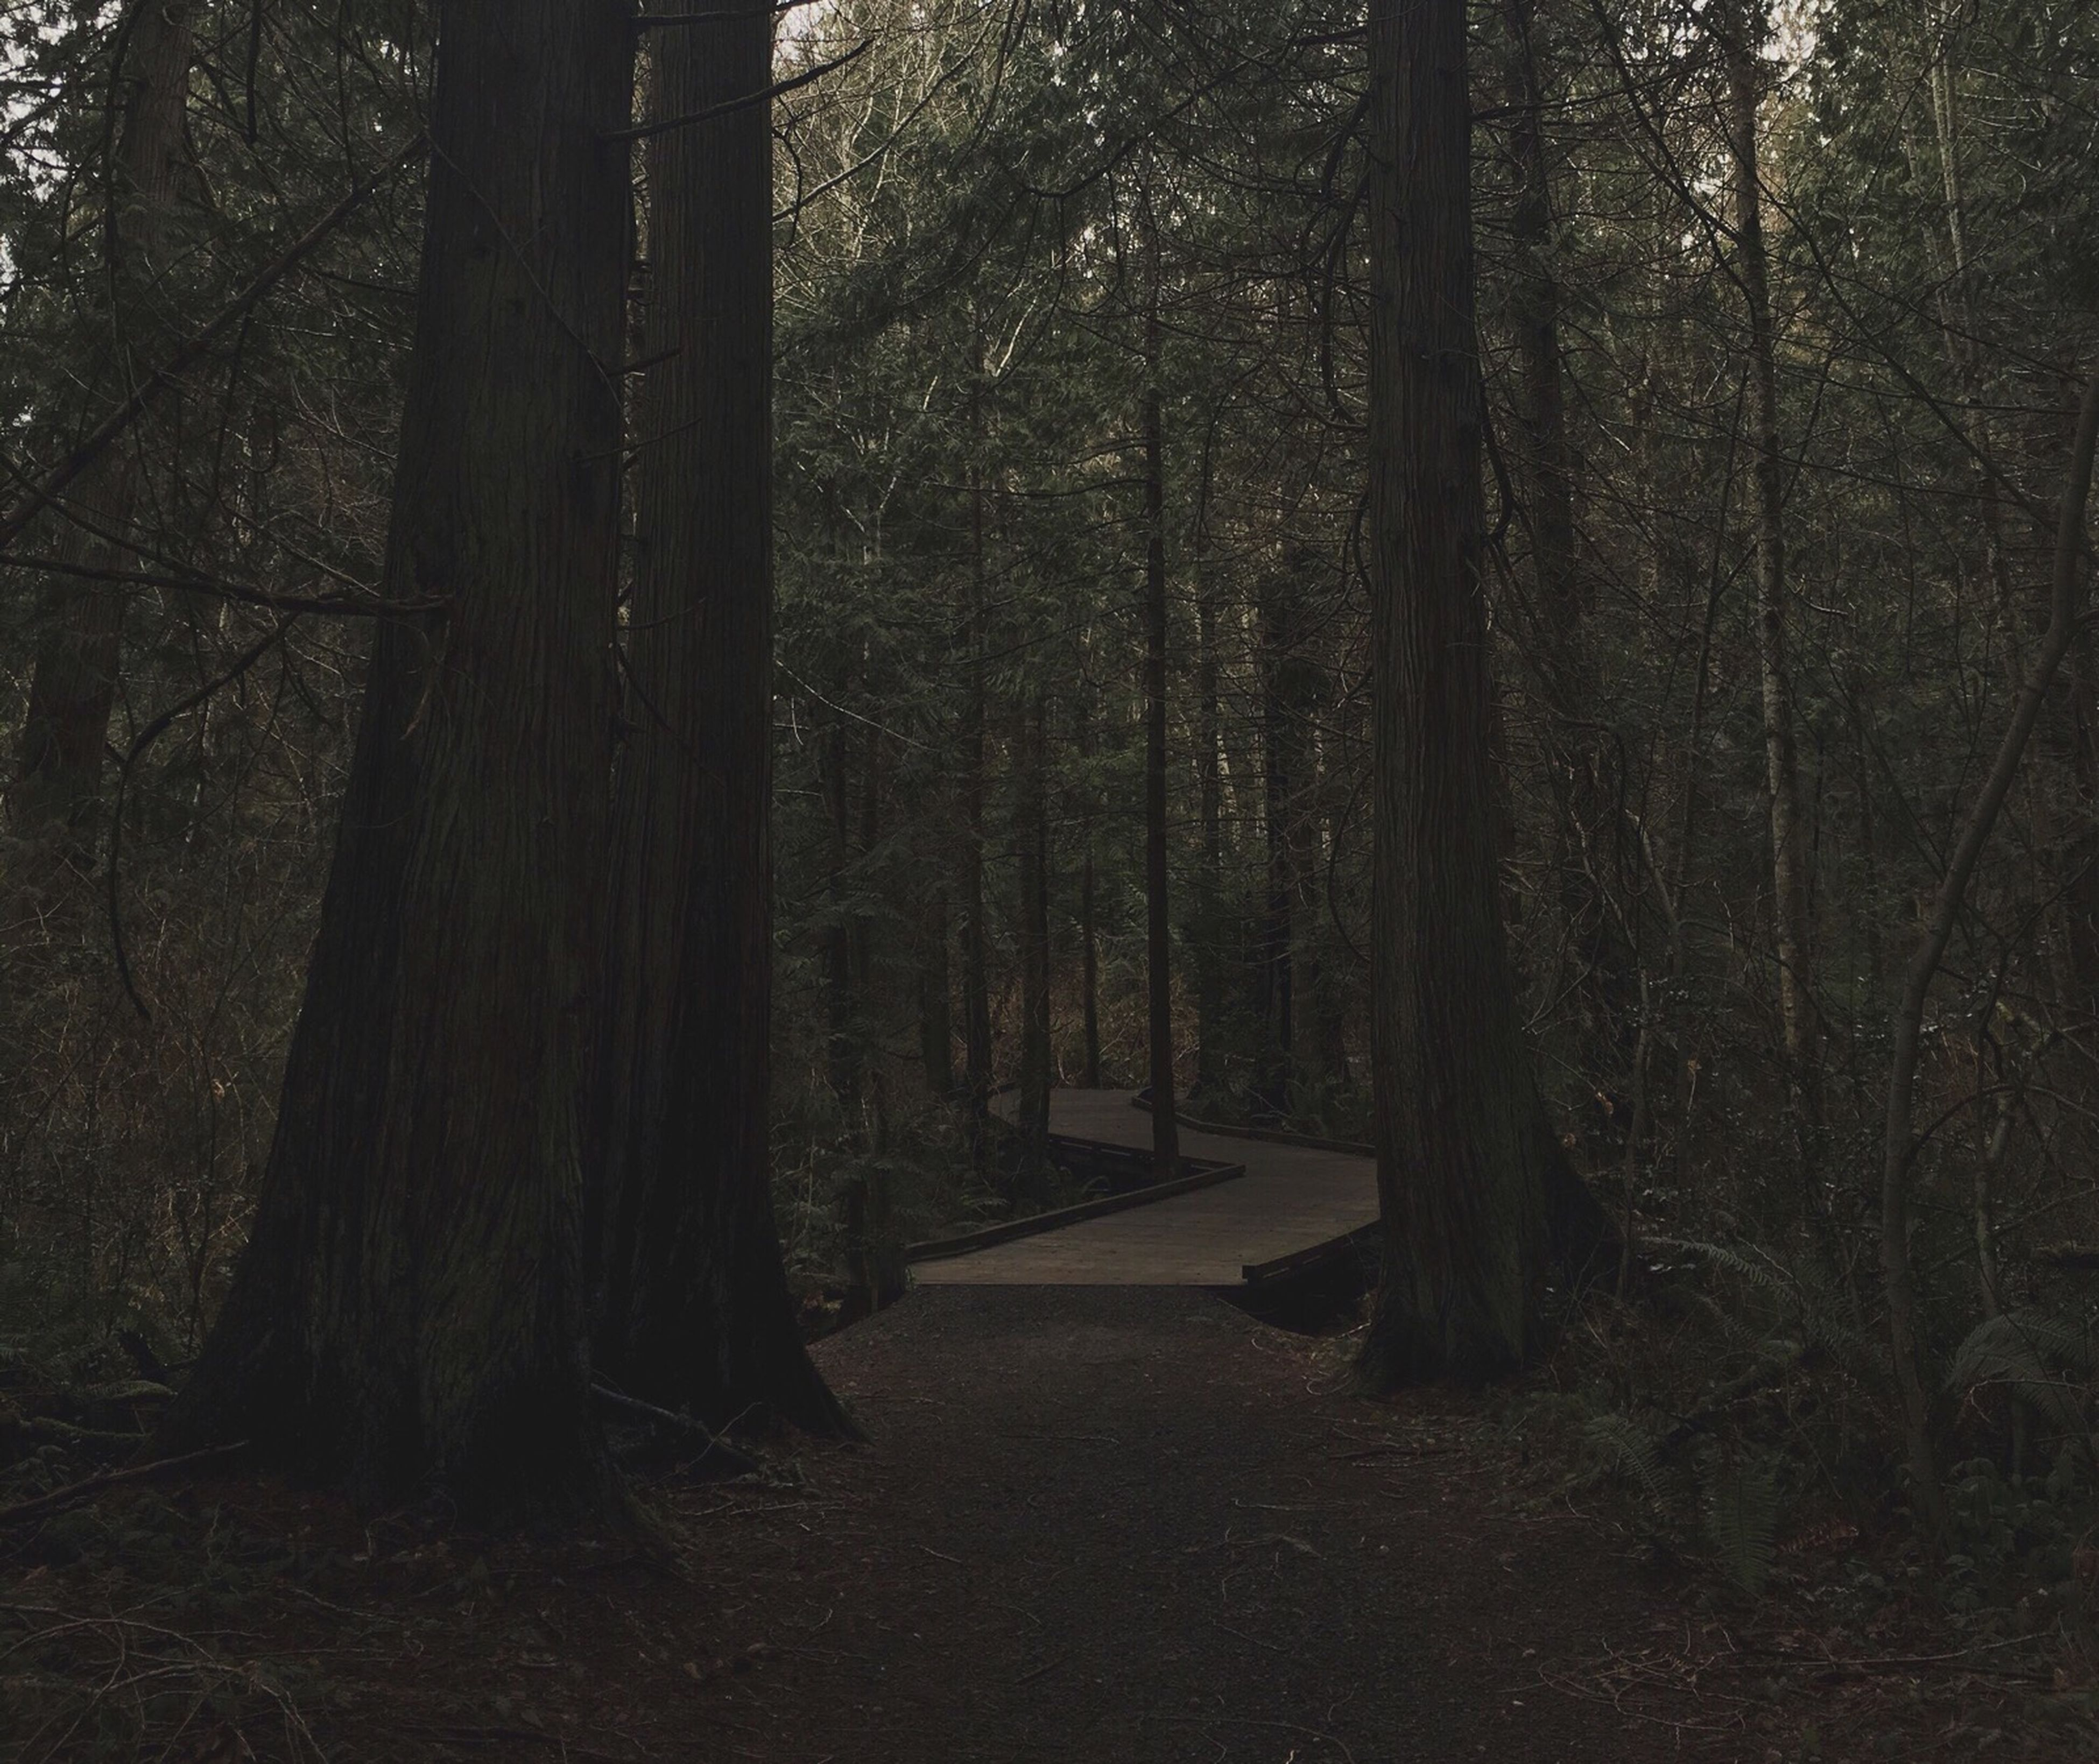 tree, forest, the way forward, tree trunk, tranquility, tranquil scene, woodland, nature, growth, beauty in nature, footpath, sunlight, scenics, non-urban scene, branch, empty, no people, outdoors, shadow, day